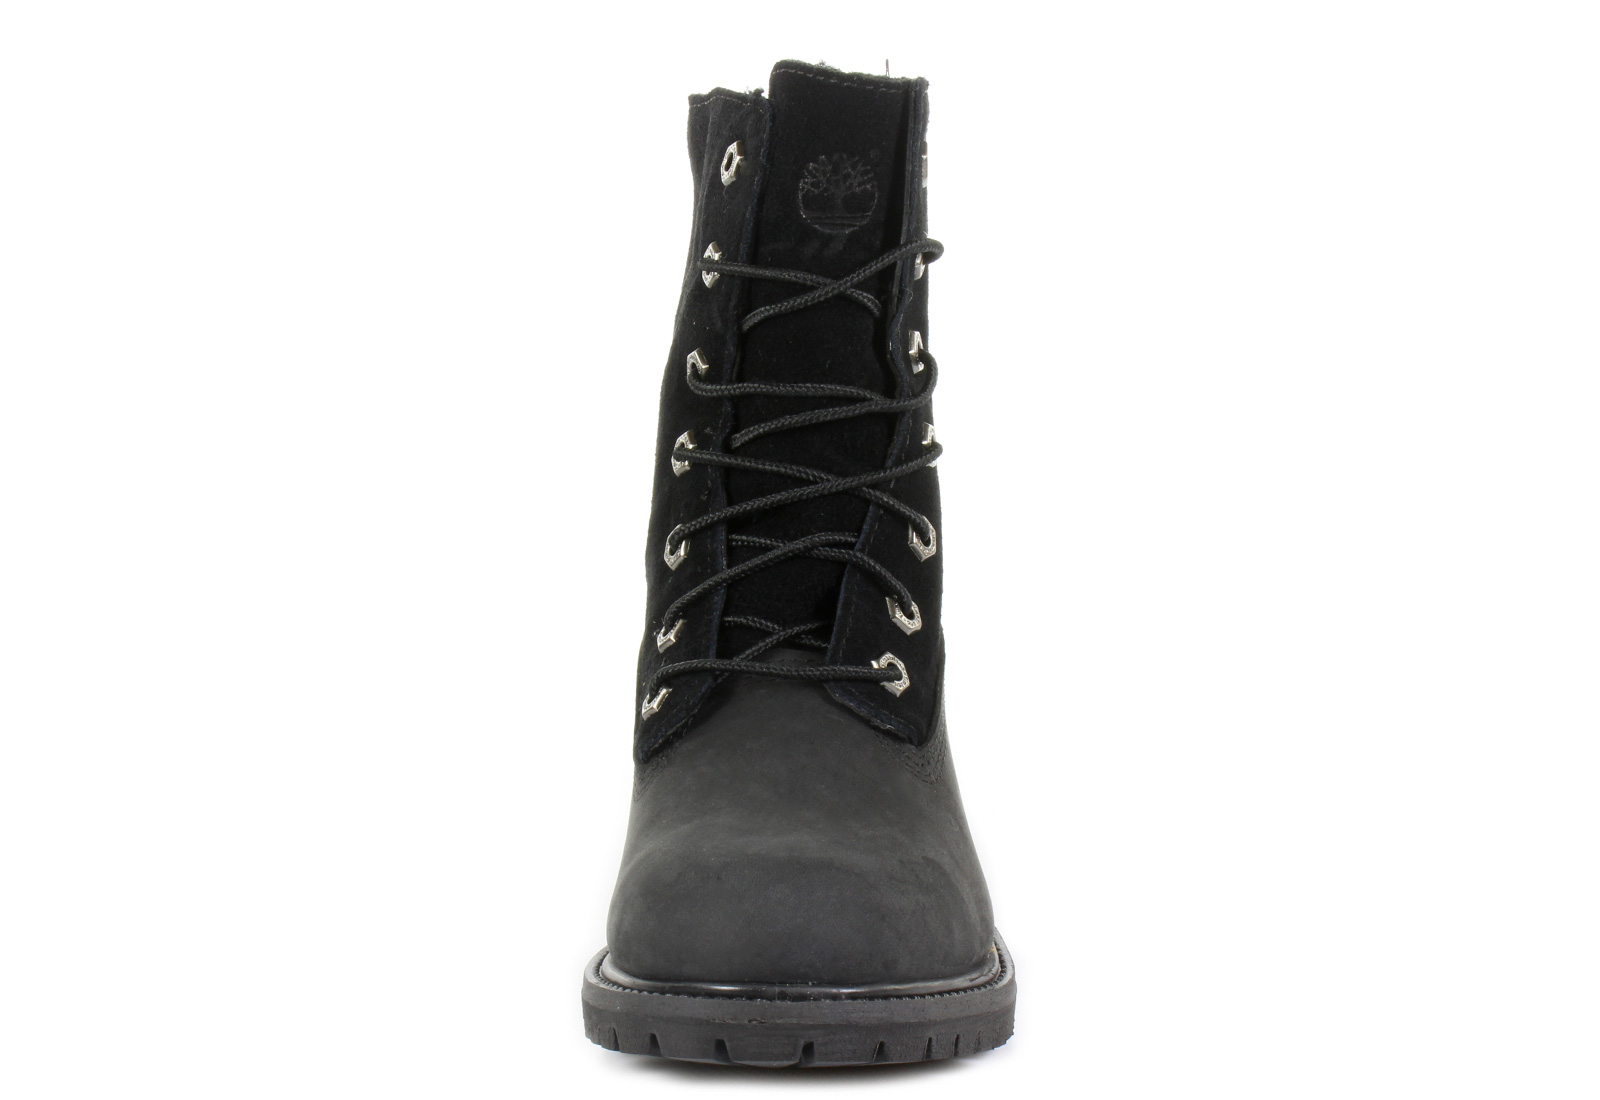 Timberland Boots Authentics Teddy Fleece 8149A BLK Online shop for sneakers, shoes and boots